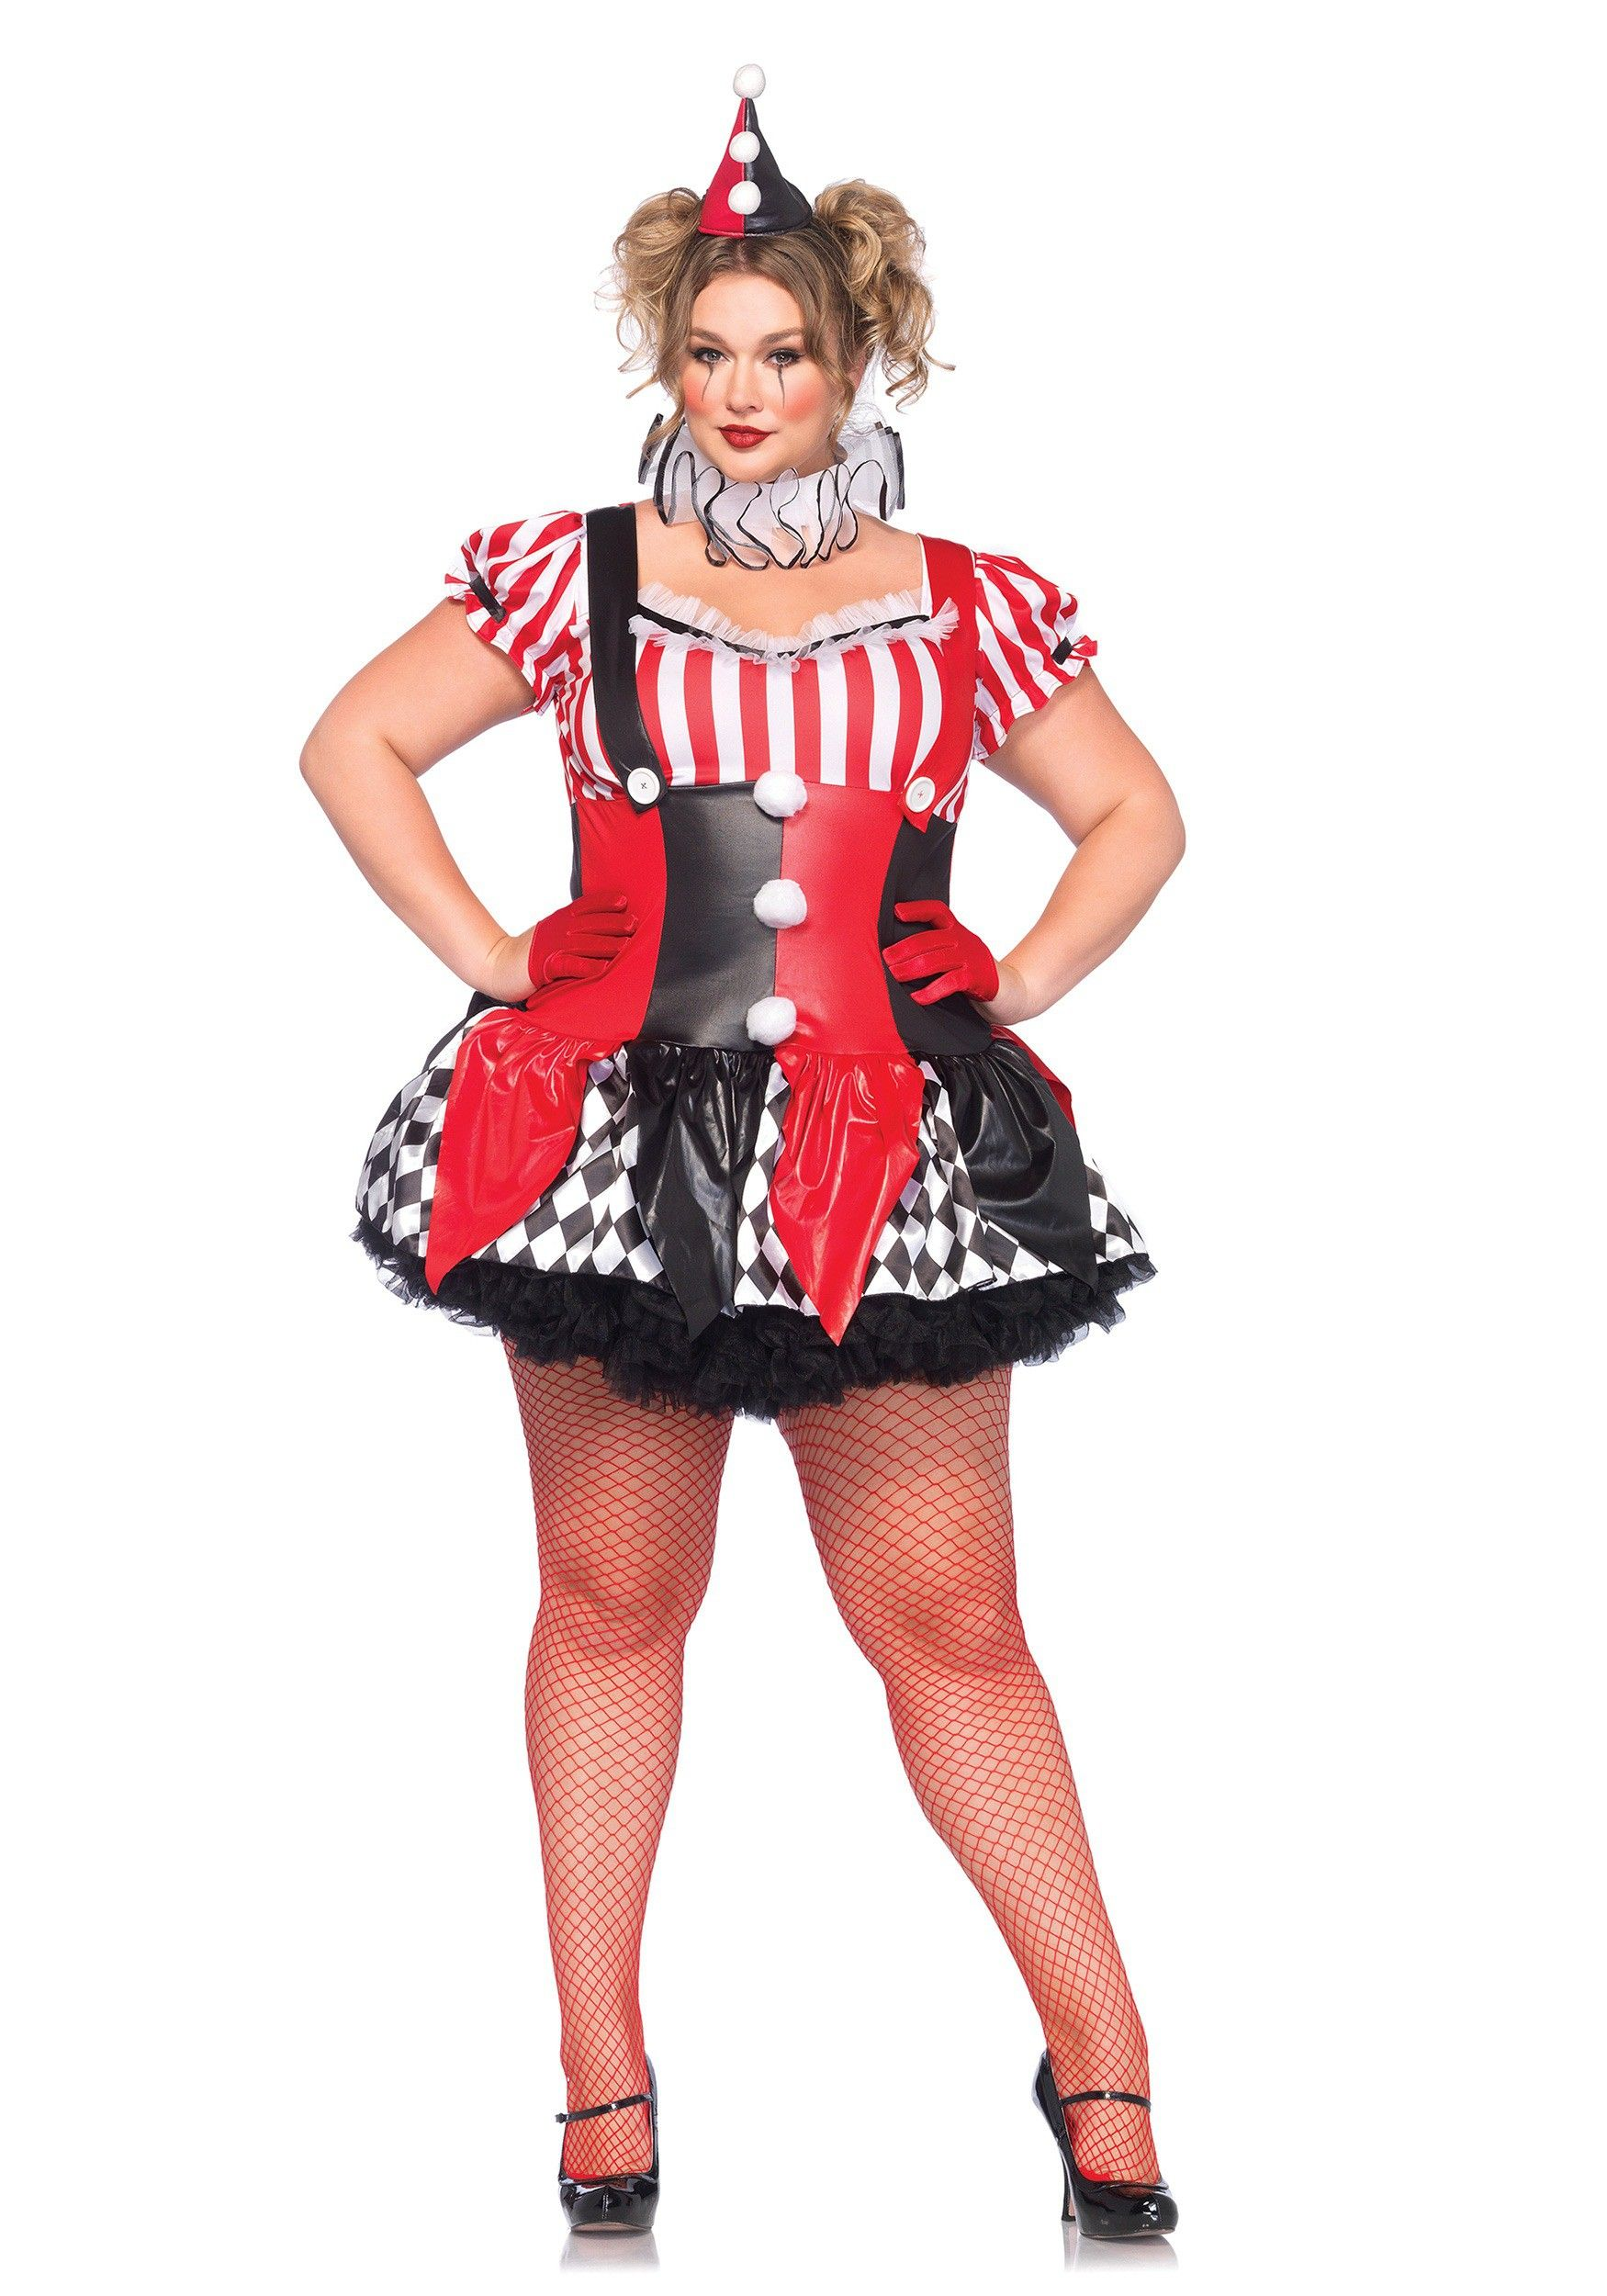 Plus Size Harlequin Clown Costume  sc 1 st  Pinterest & Plus Size Harlequin Clown Costume | Plus-size Fashion - Halloween ...